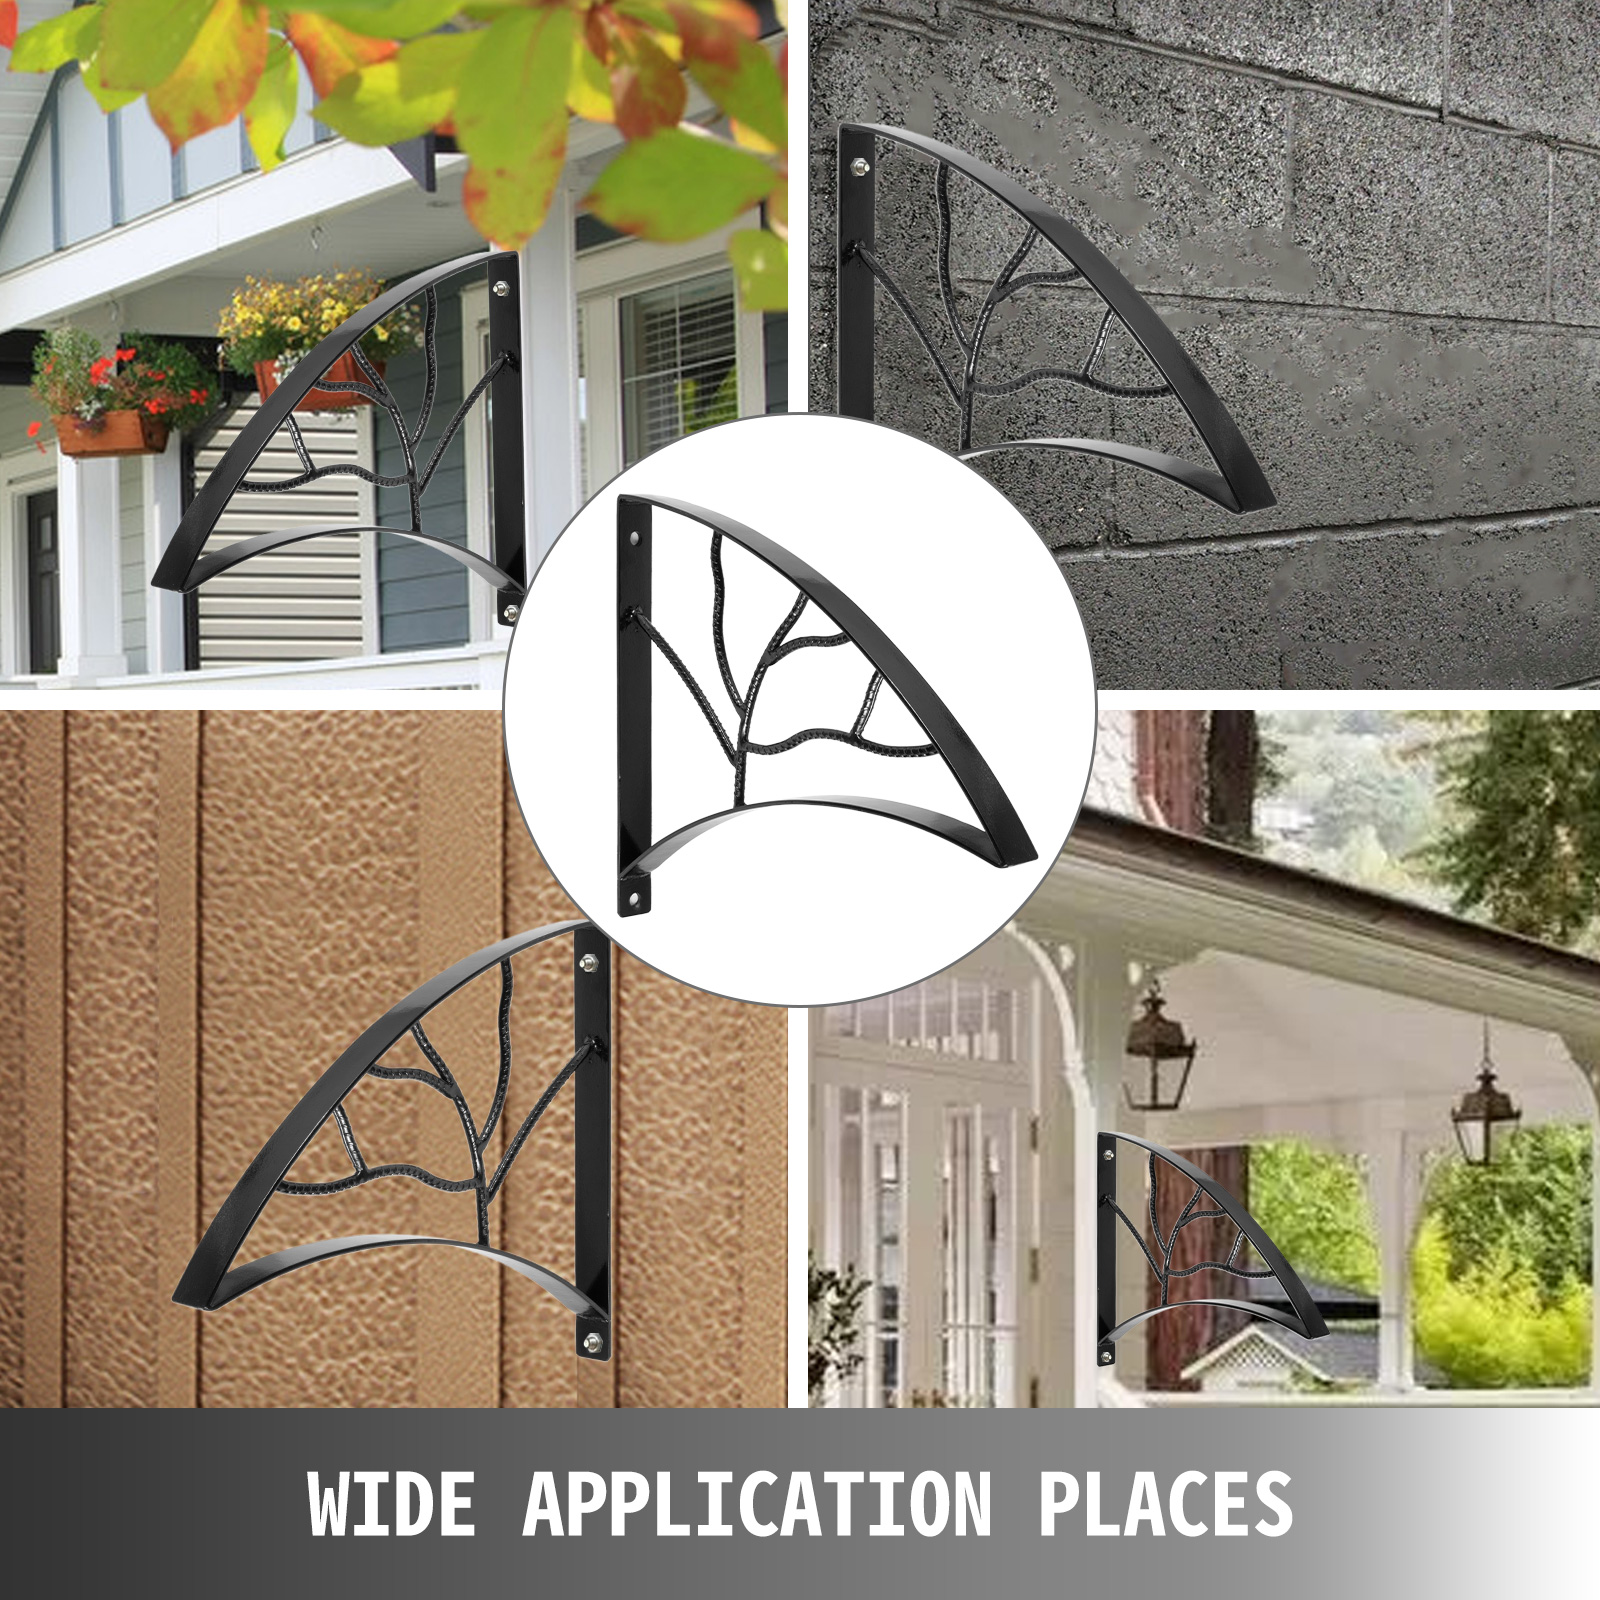 Handrails-for-Outdoor-Step-Wrought-Iron-Handrail-20-034-Length-Porch-Deck-Railing thumbnail 43